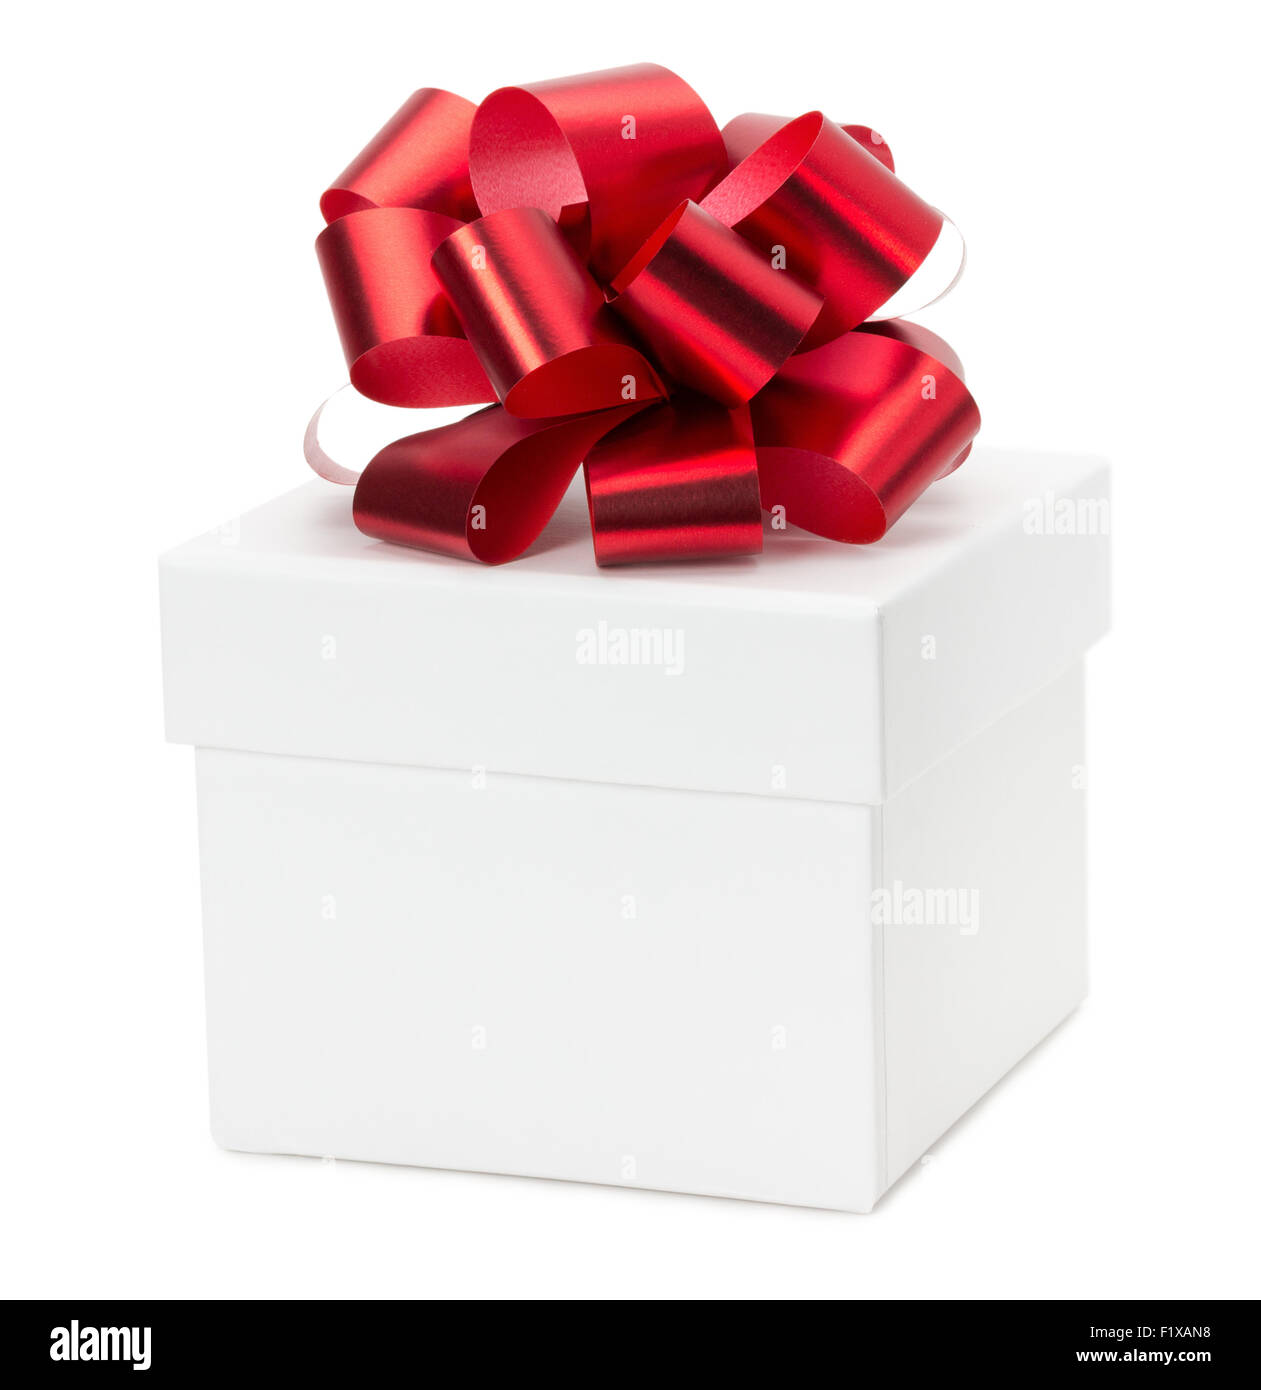 gift box with red bow isolated on the white background. - Stock Image